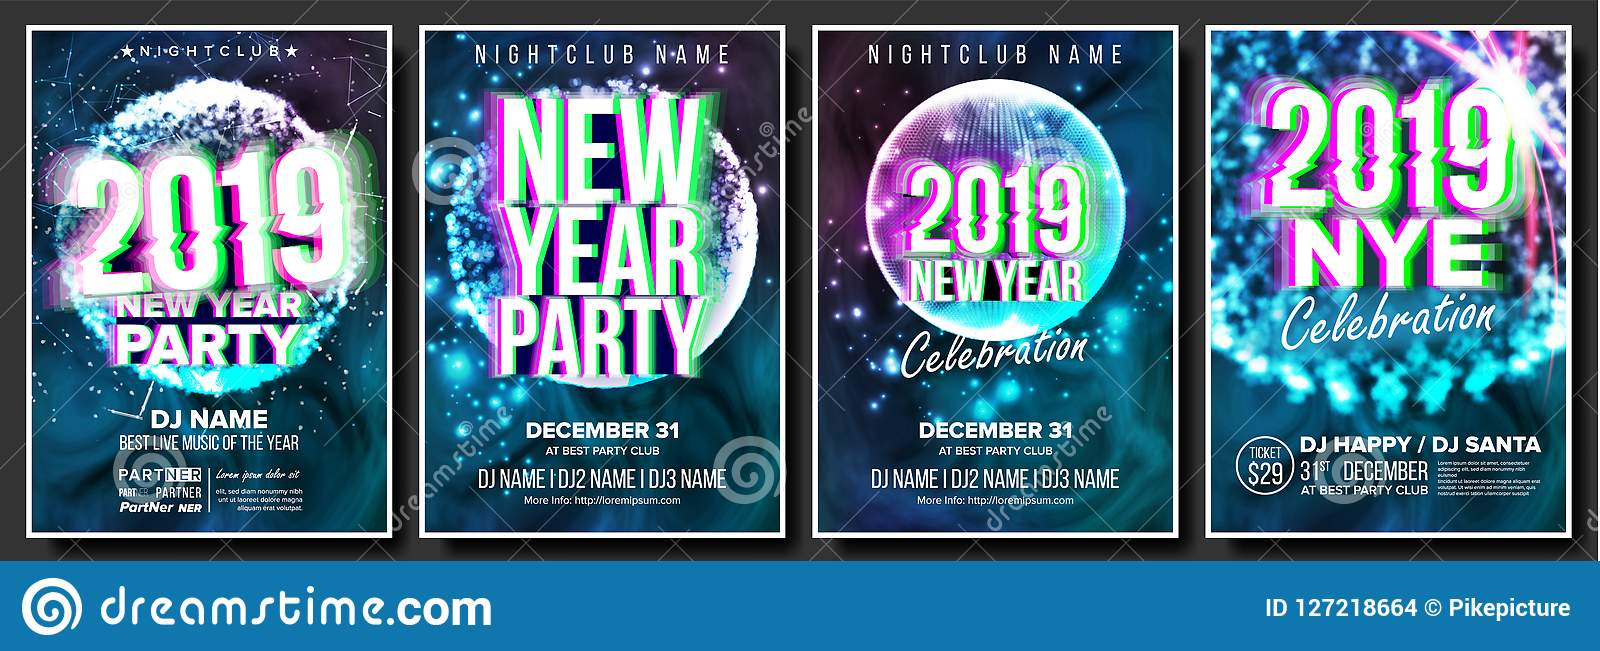 2019 party flyer poster set vector night club celebration musical concert banner happy new year celebration template winter background disco light